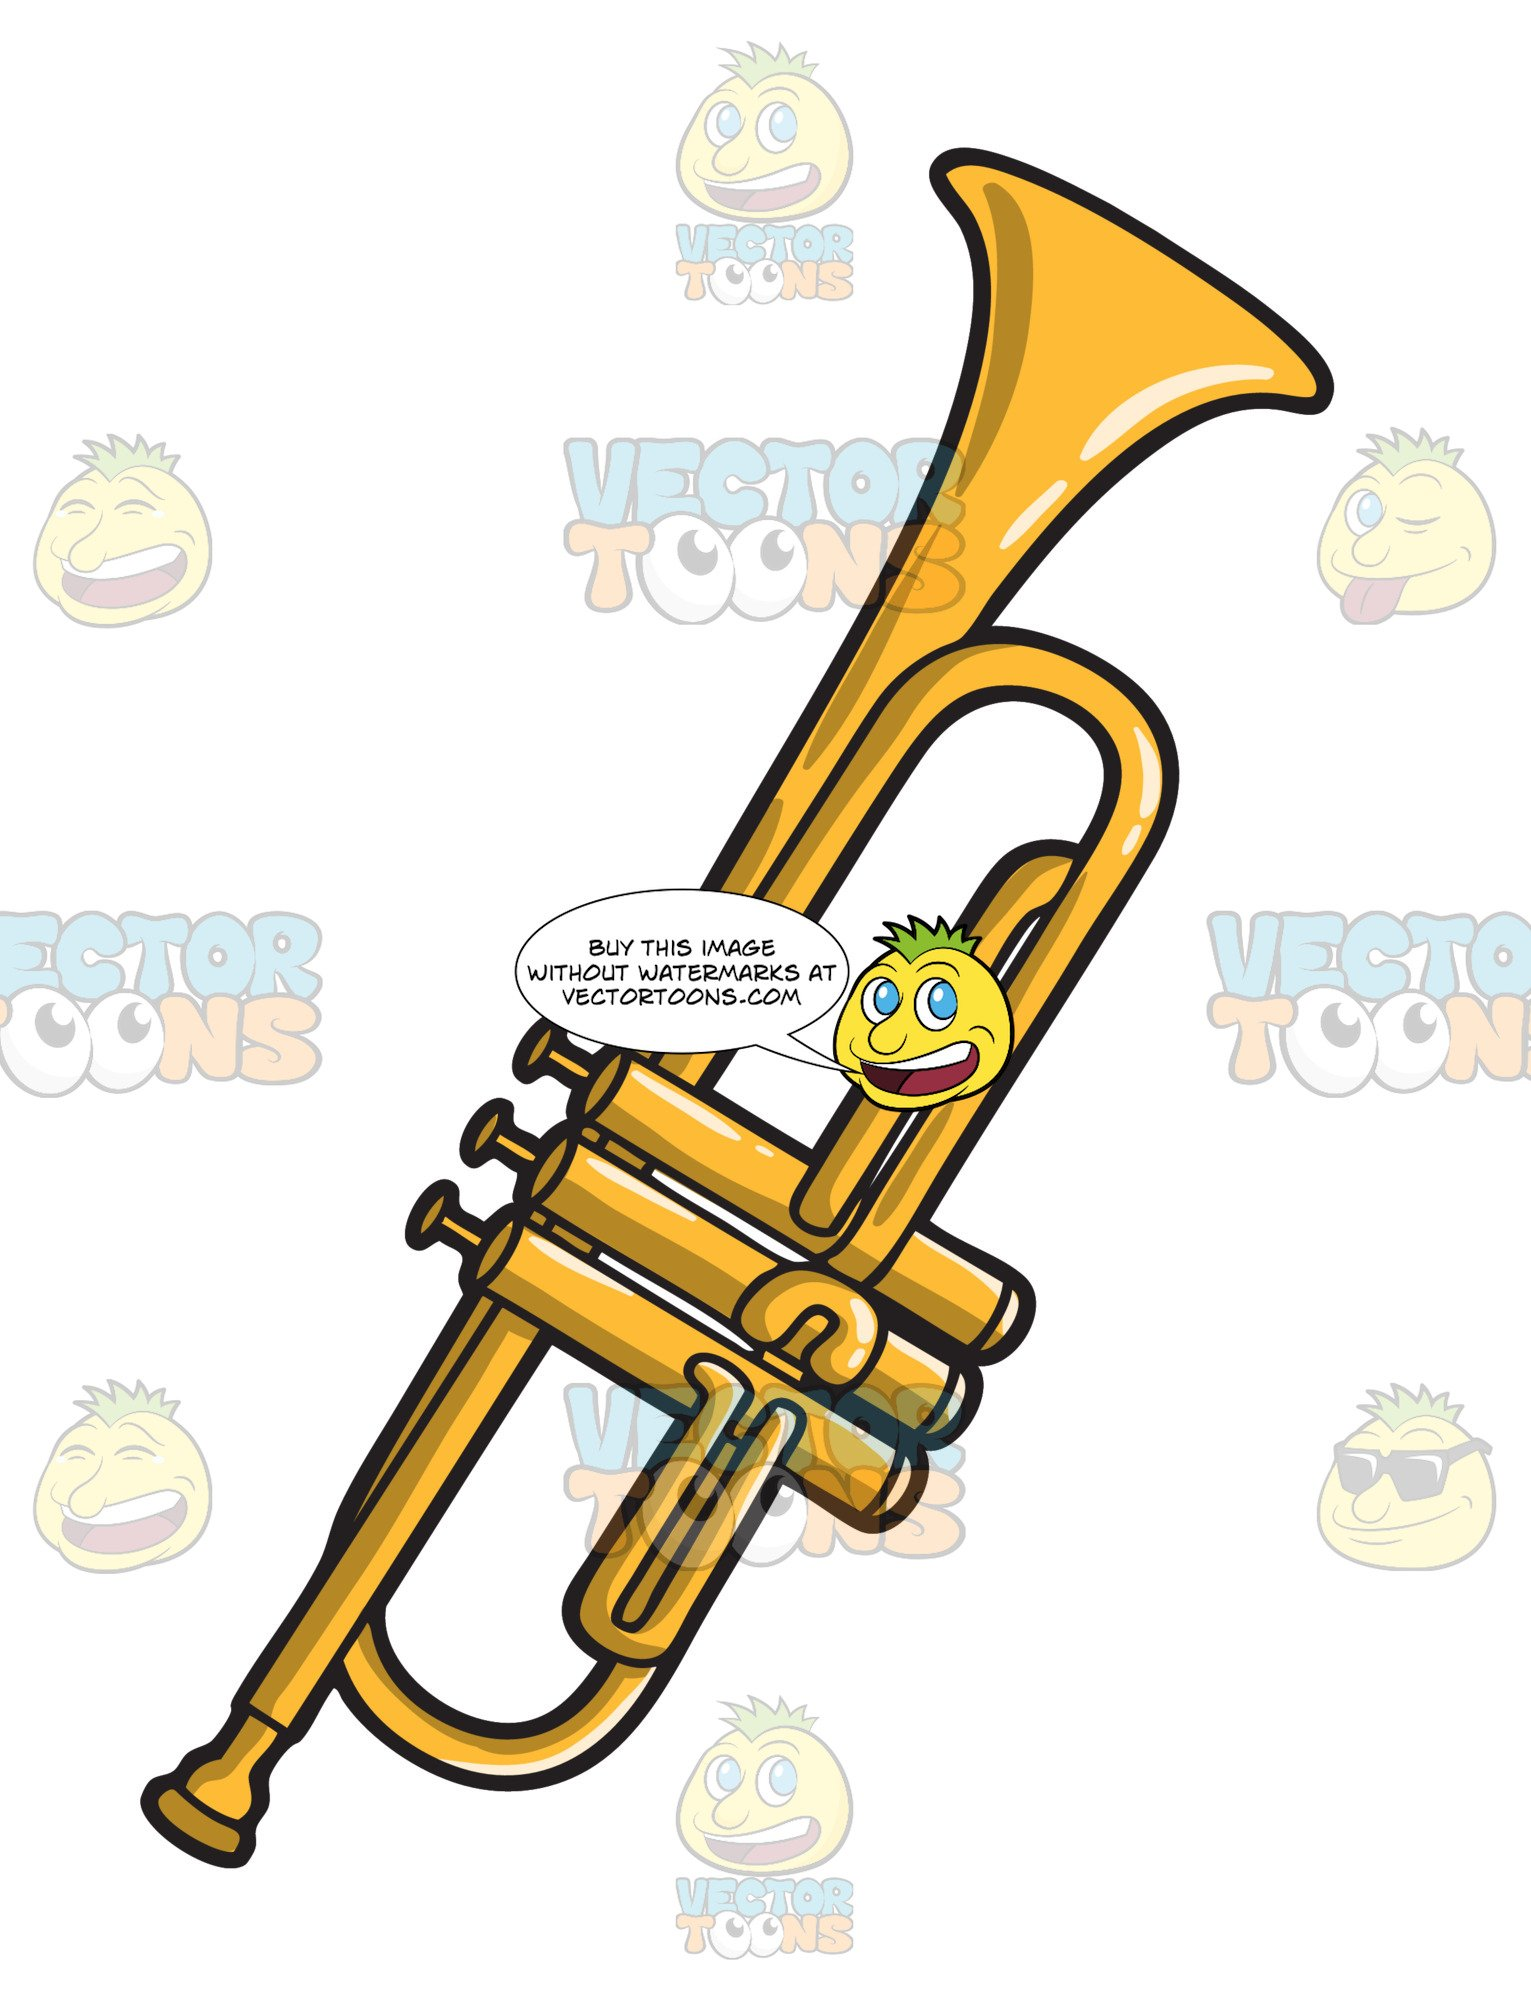 A Musical Instrument Called The Trumpet.